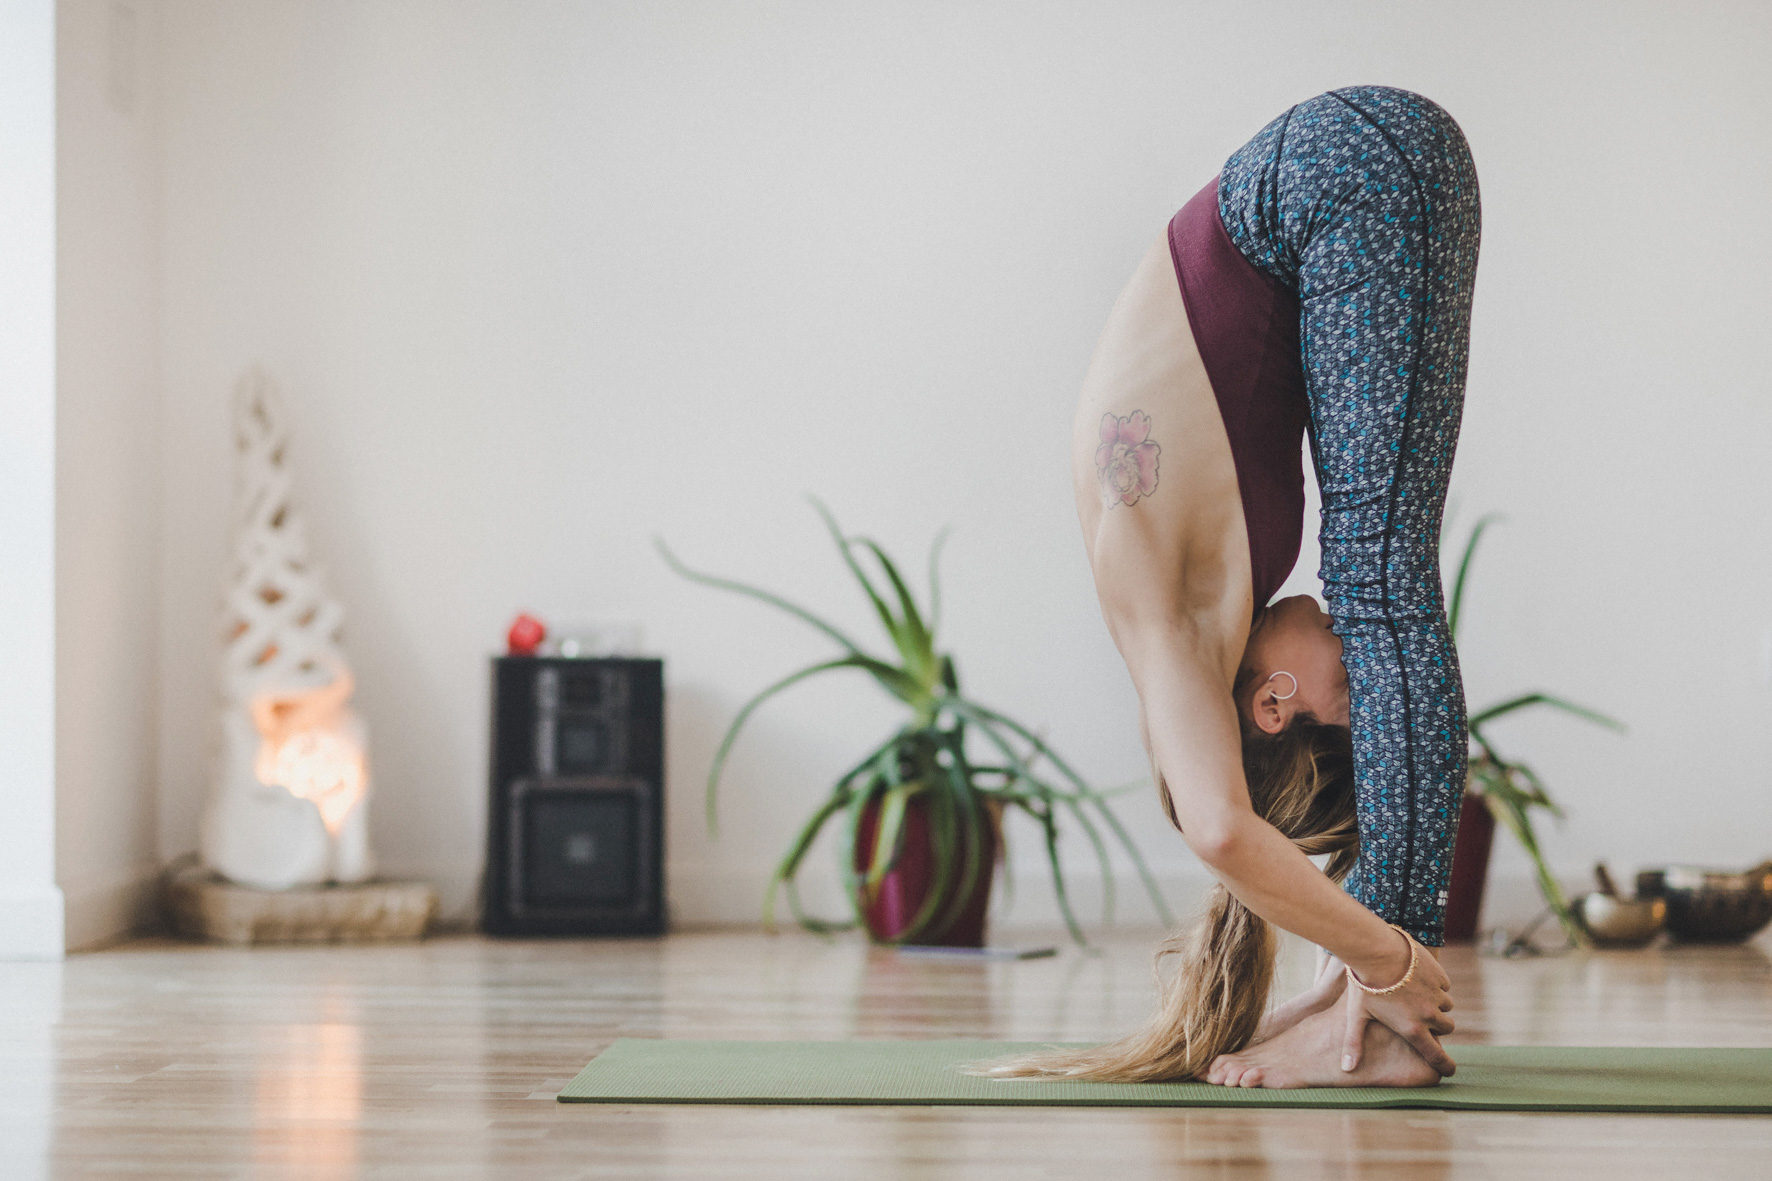 personal practice - yoga and photo-26.jpg